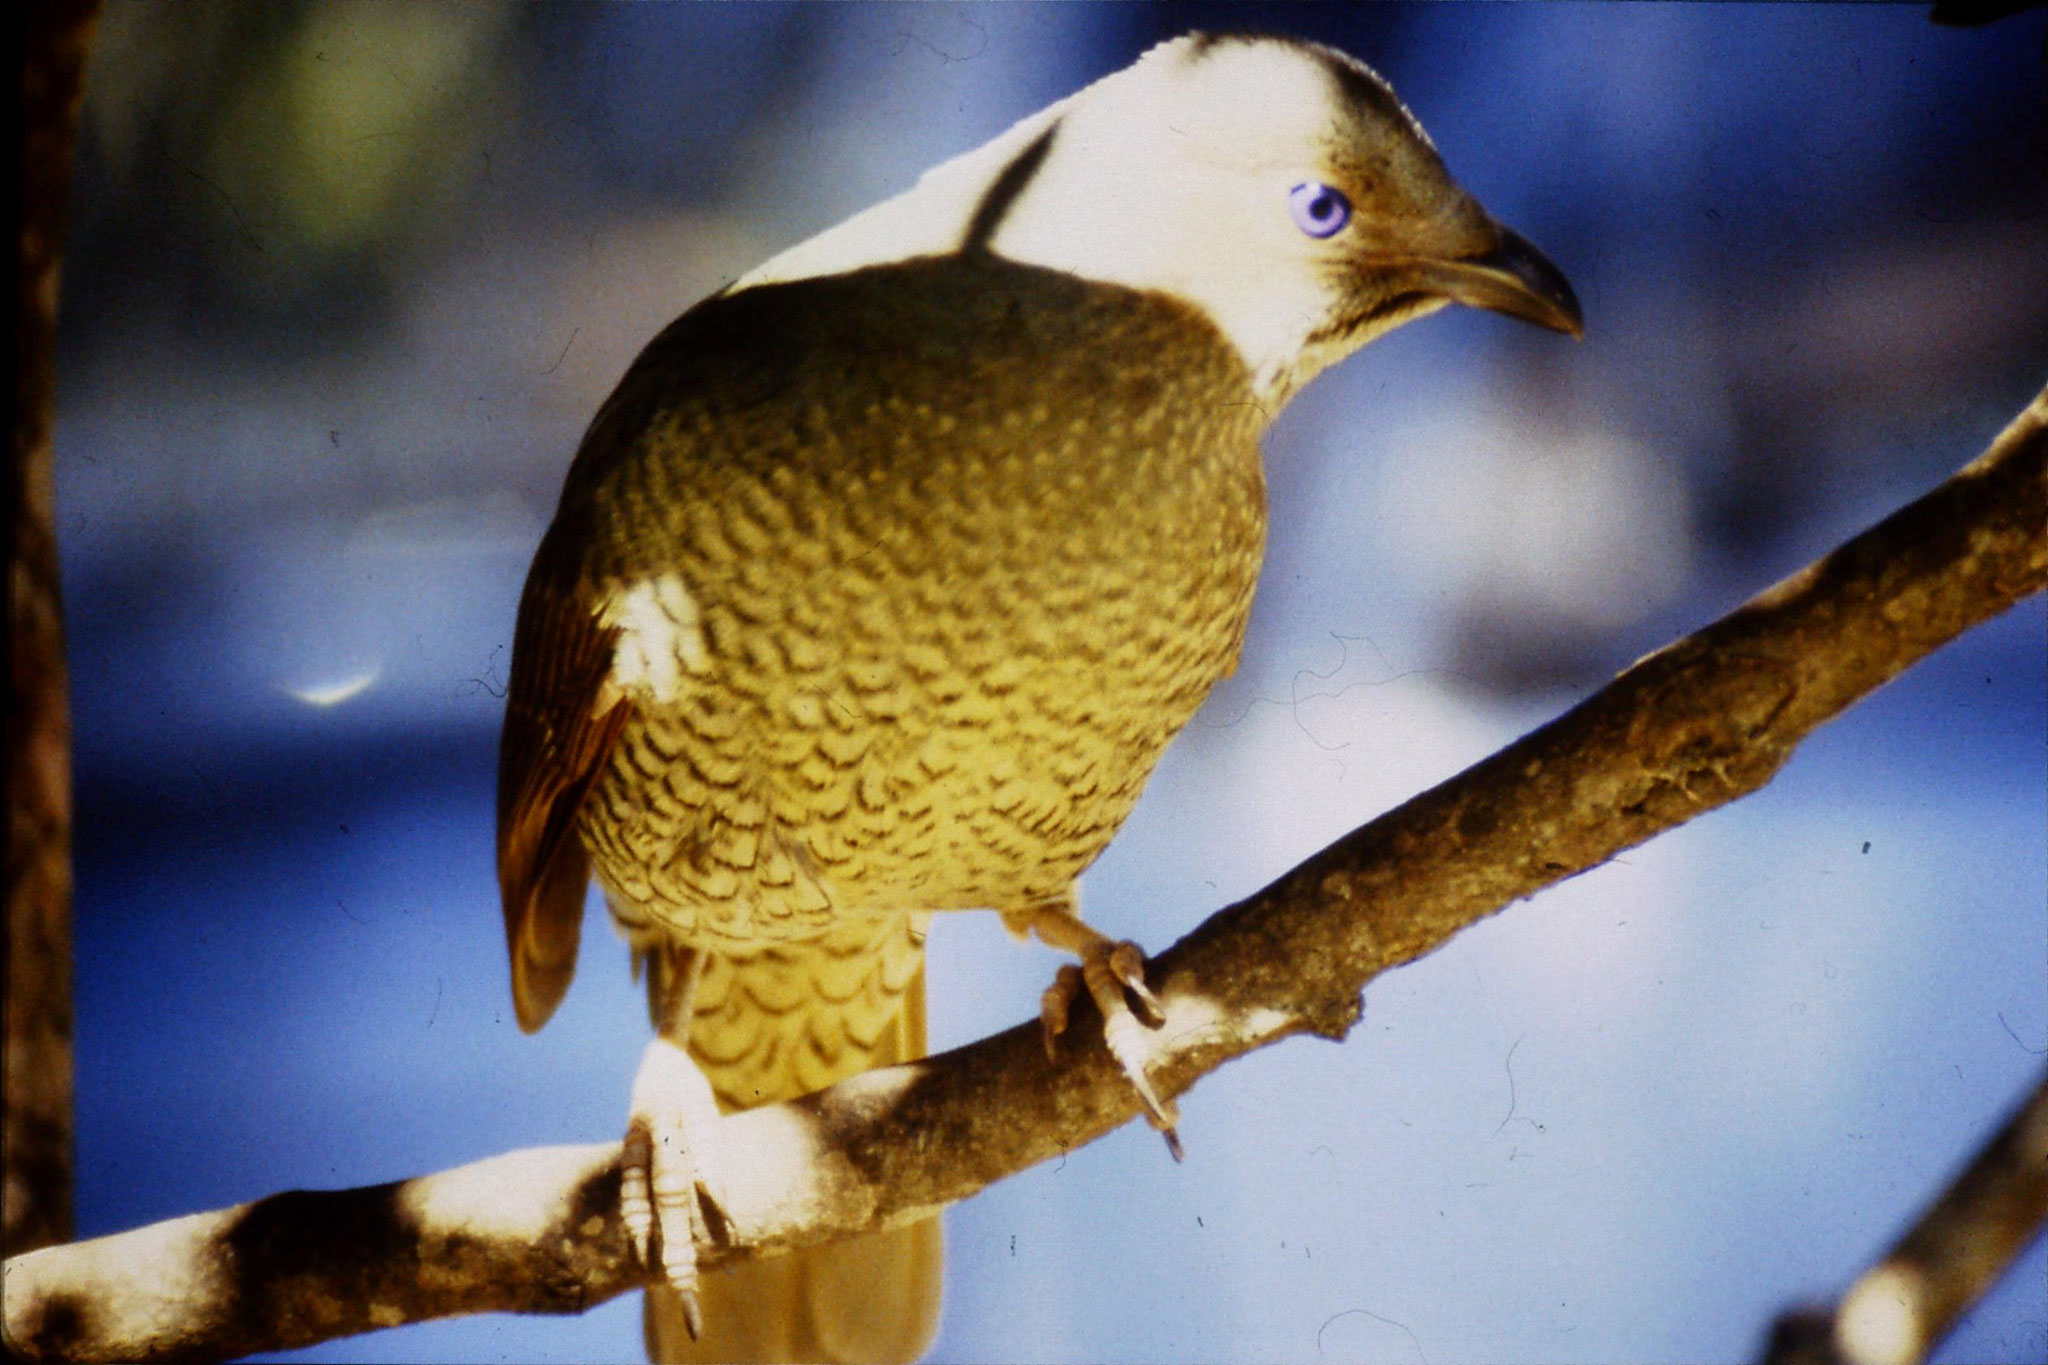 13/10/1990: 6: Mt Lamington, Lewin's Honey eater